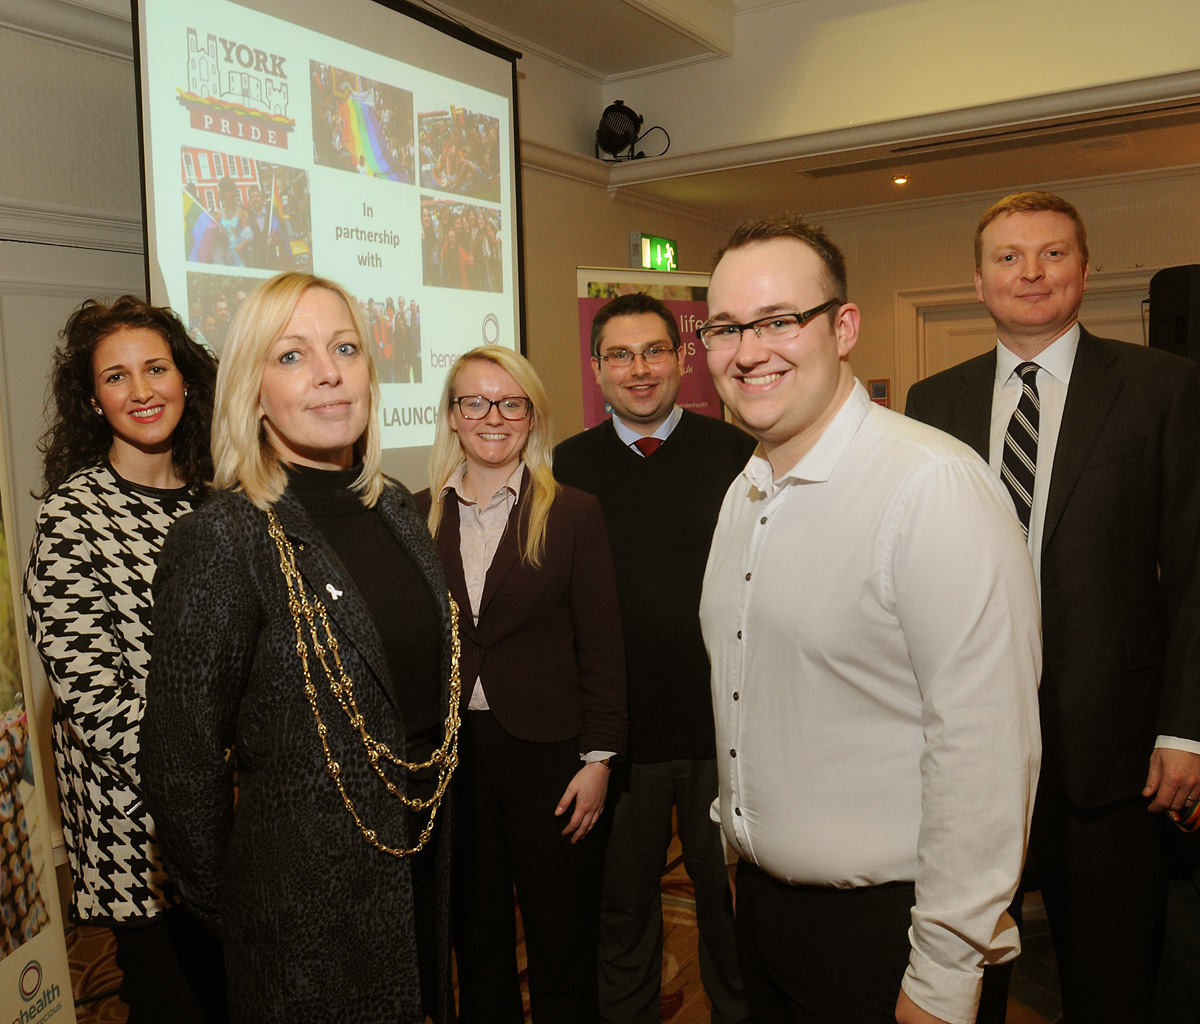 From left, Sophie Hicks, Councillor Julie Gunnell, Hayley Parker, Councillor James Alexander, Greg Stephenson and Lawrence Christensen at the launch of York Pride 2014 at the Hilton Hotel